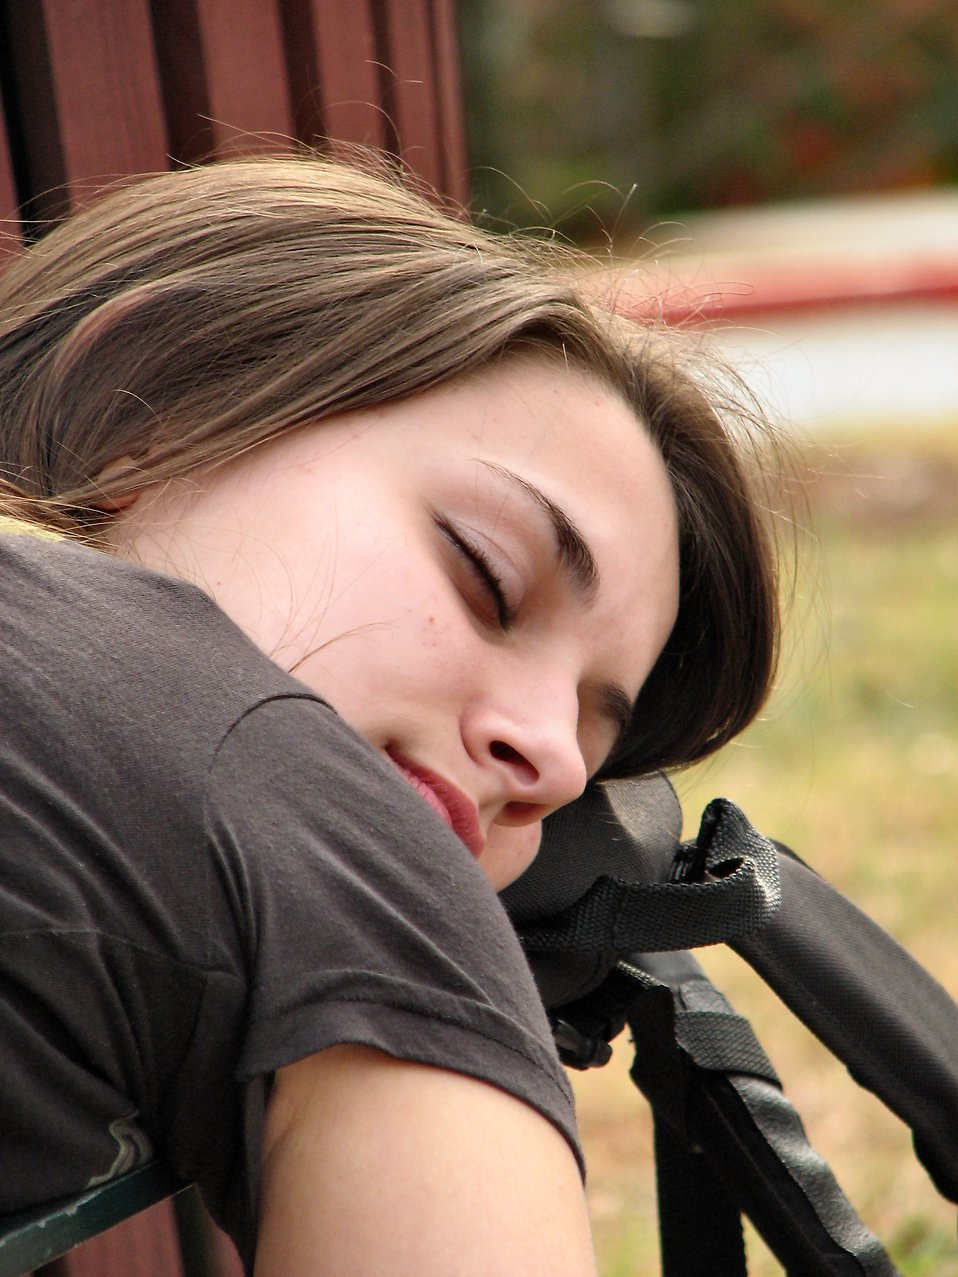 Closeup of a teen girl sleeping on a bench : Free Stock Photo